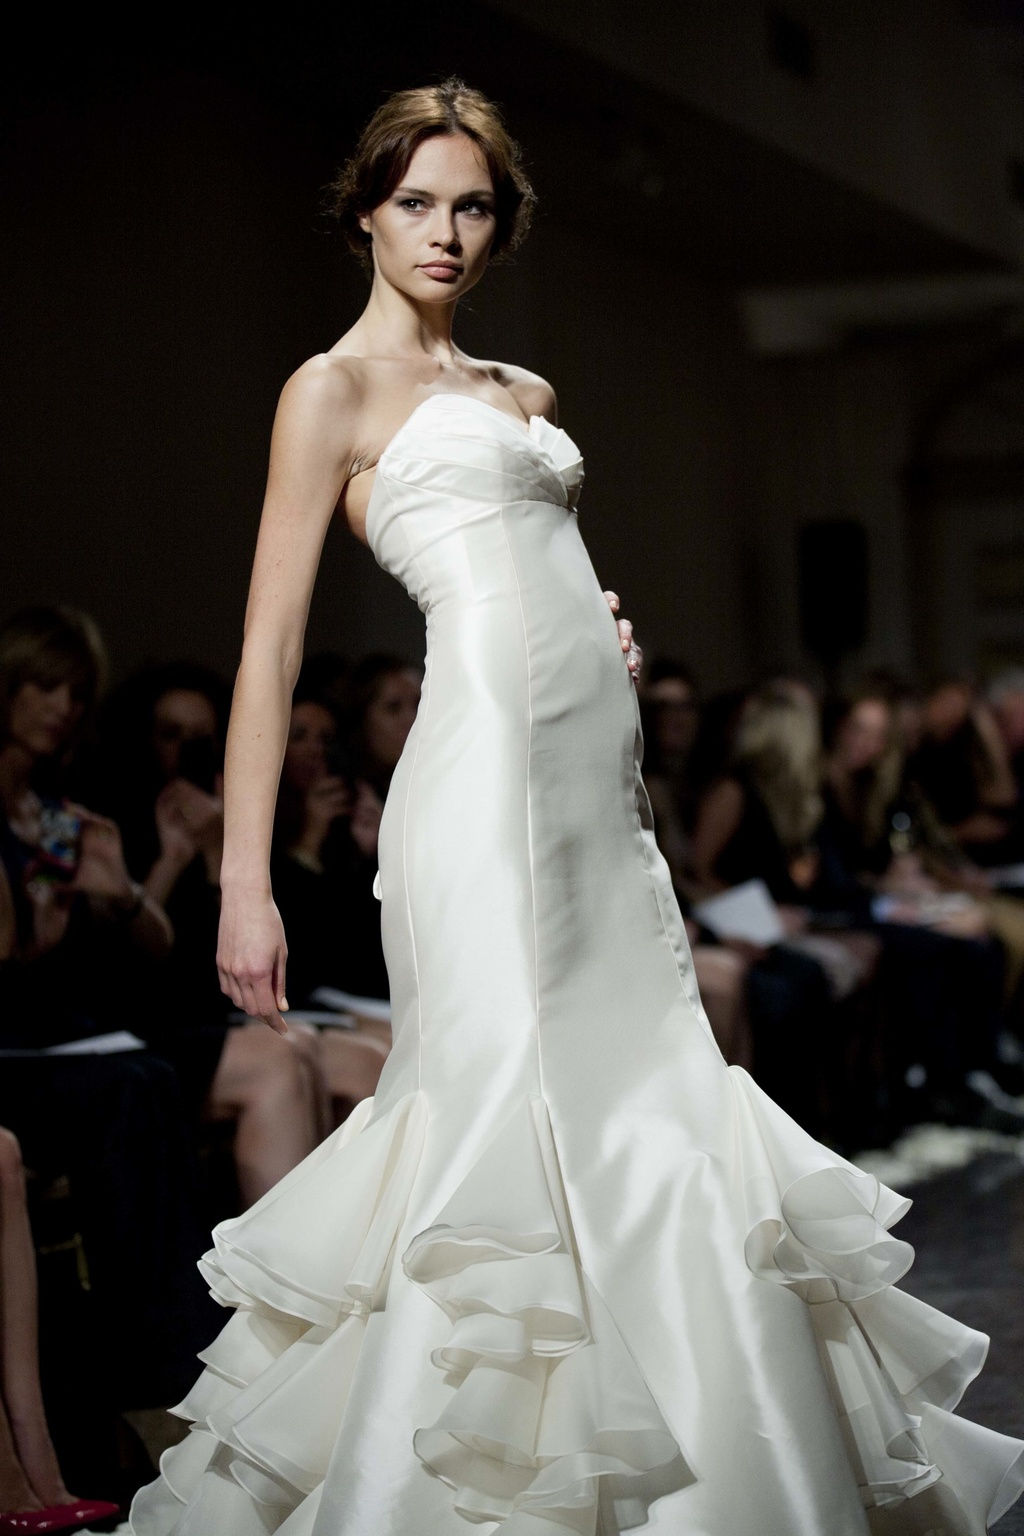 Wedding-dress-lazaro-fall-2012-bridal-gowns-sleek-mermaid-ruffles.full